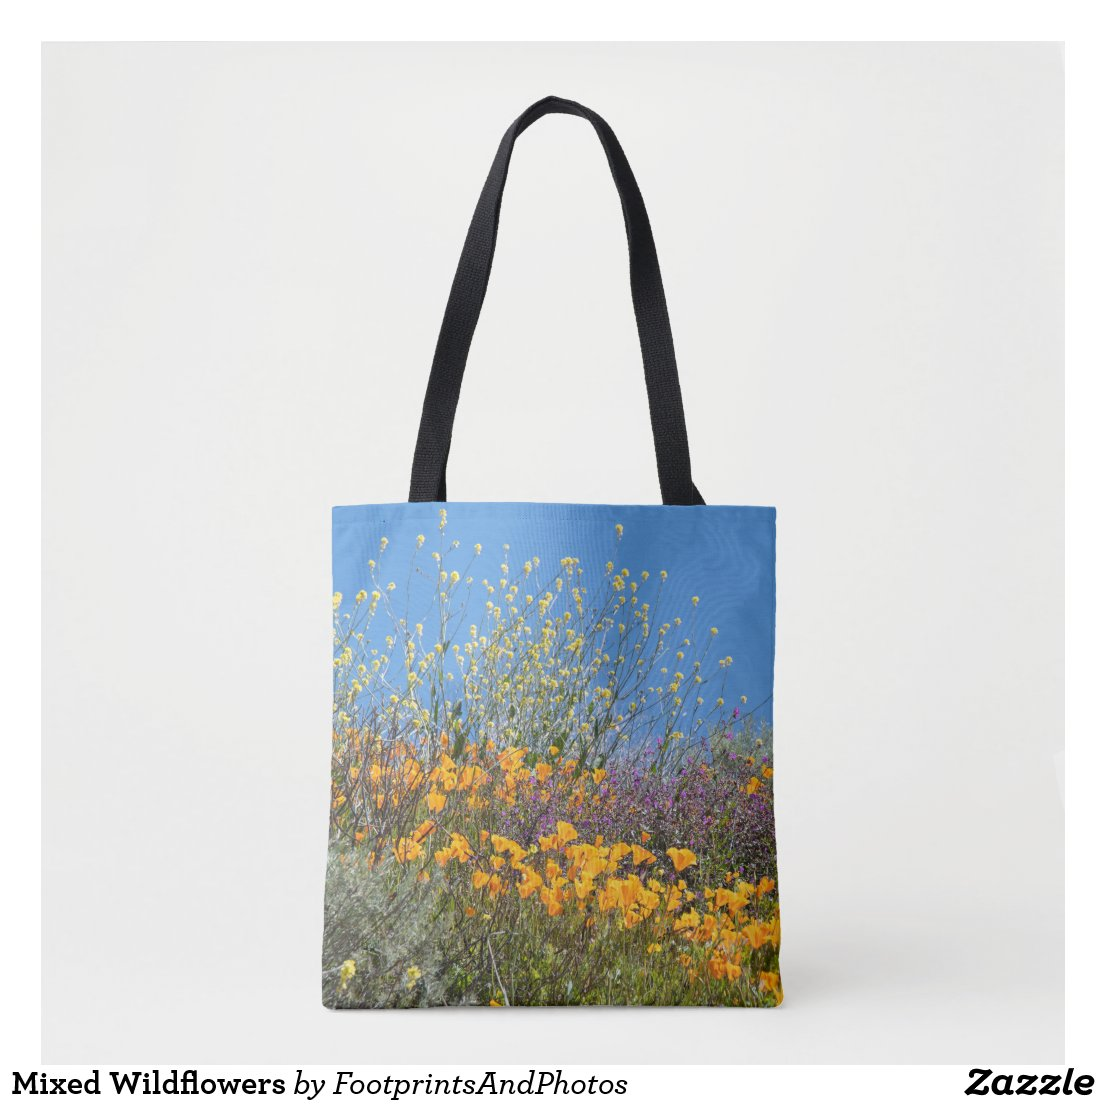 Mixed Wildflowers Tote